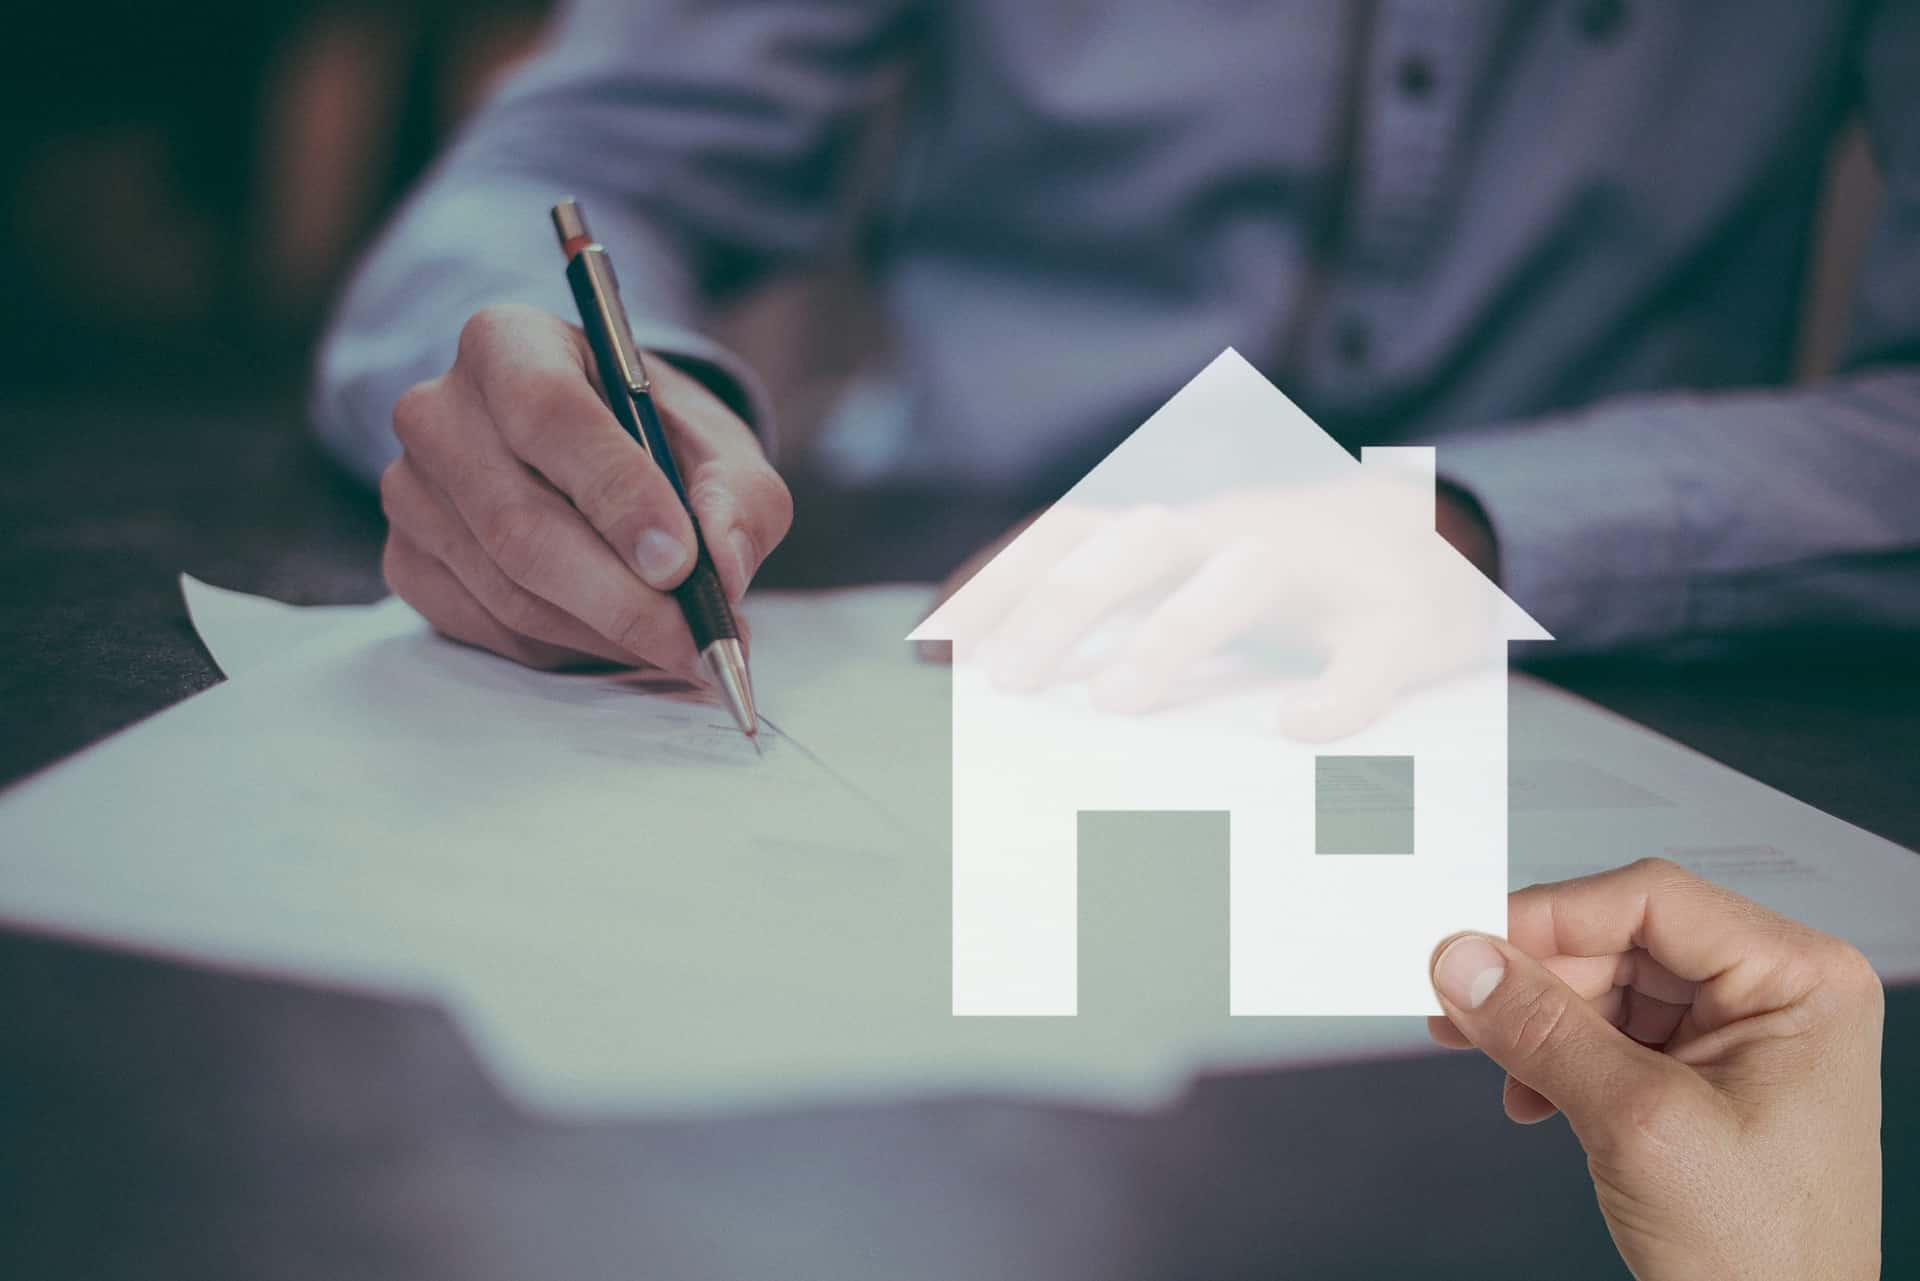 How Does a Mortgage Work When Buying a House